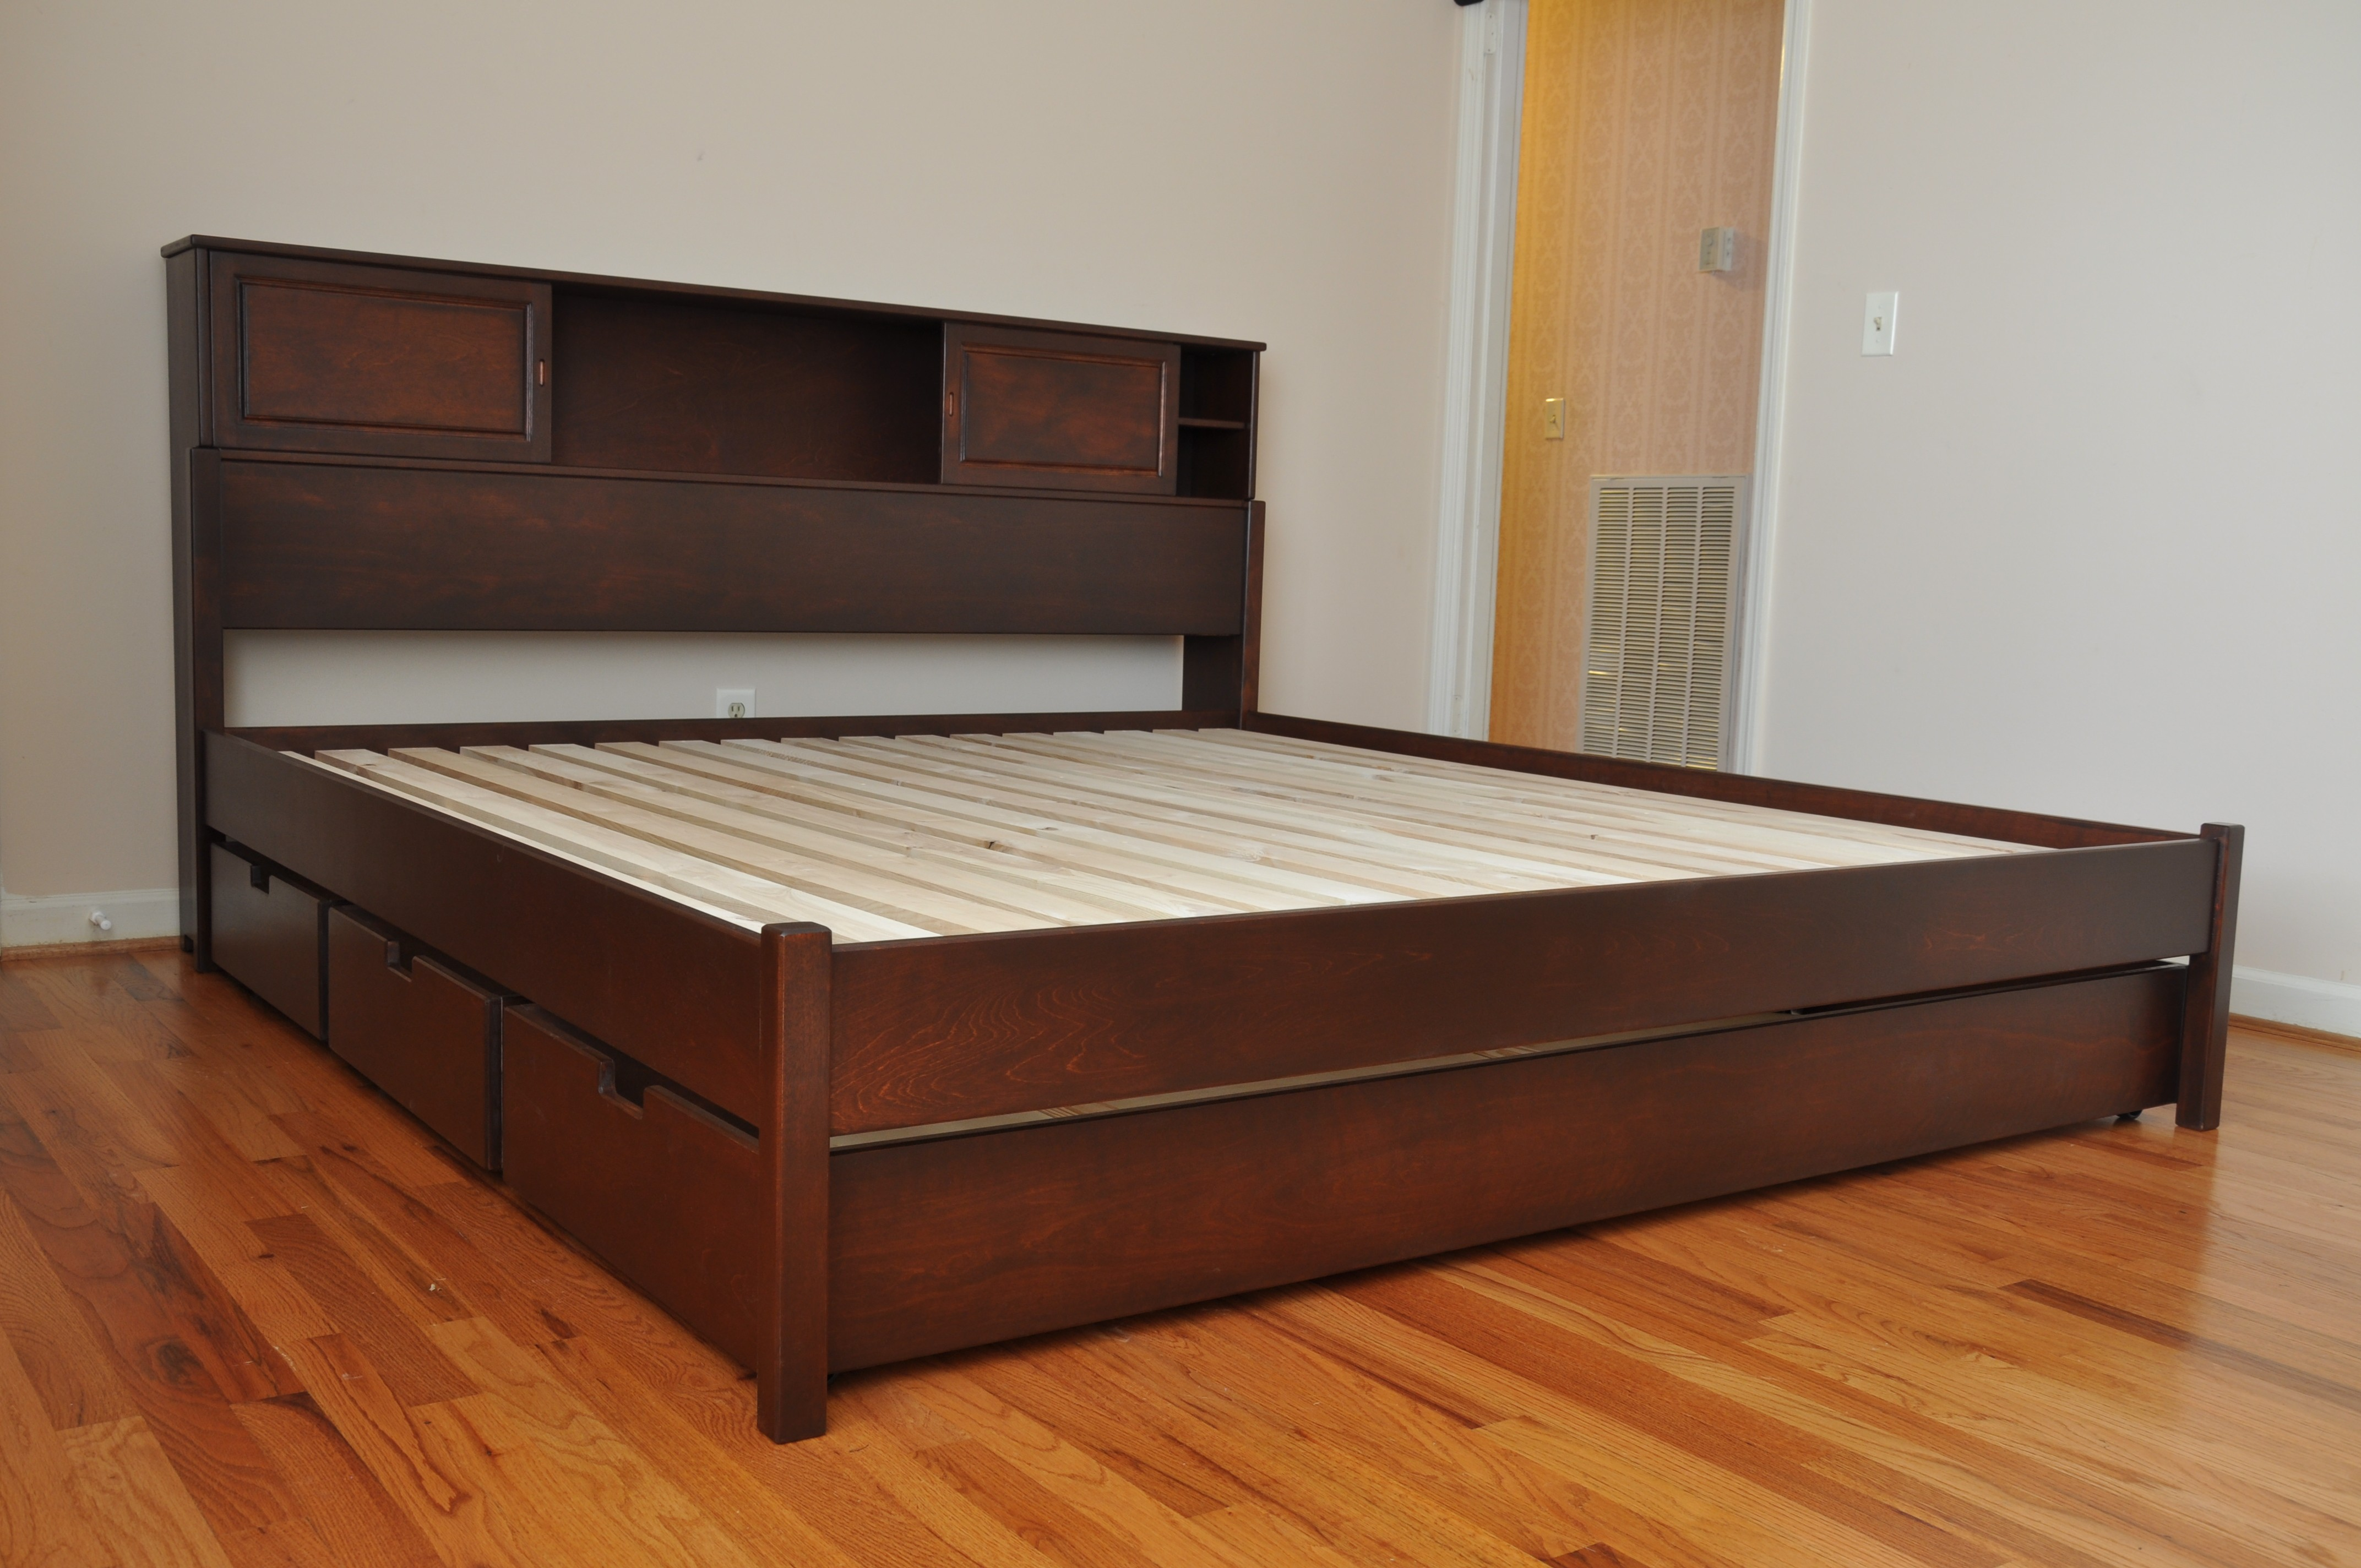 Prepac King Size Platform Bed With Storage Drawers In Cherry Finish